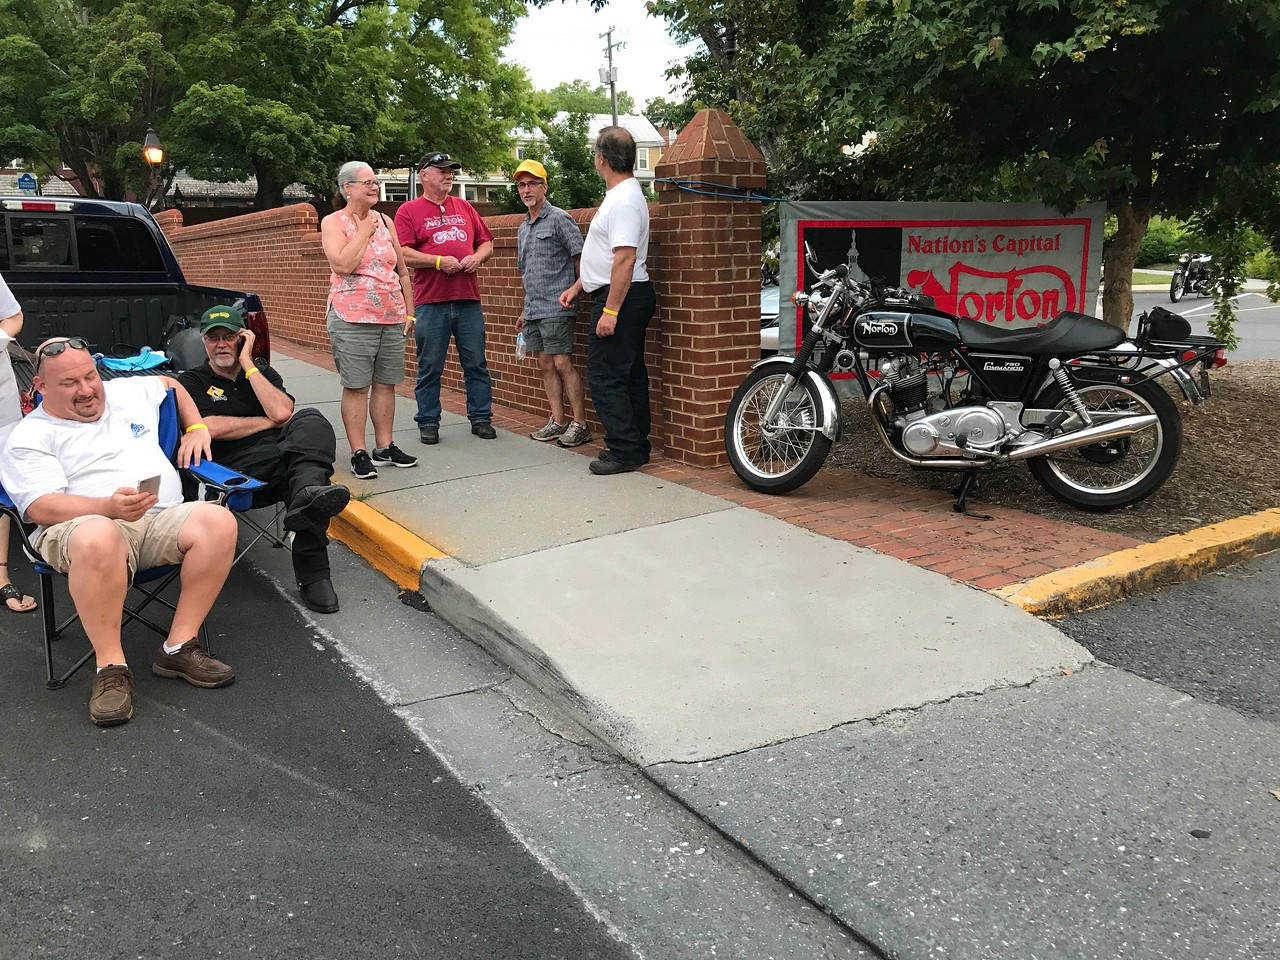 Downtown Lexington VA destination for Norton Thunder Rallygoers with private parking